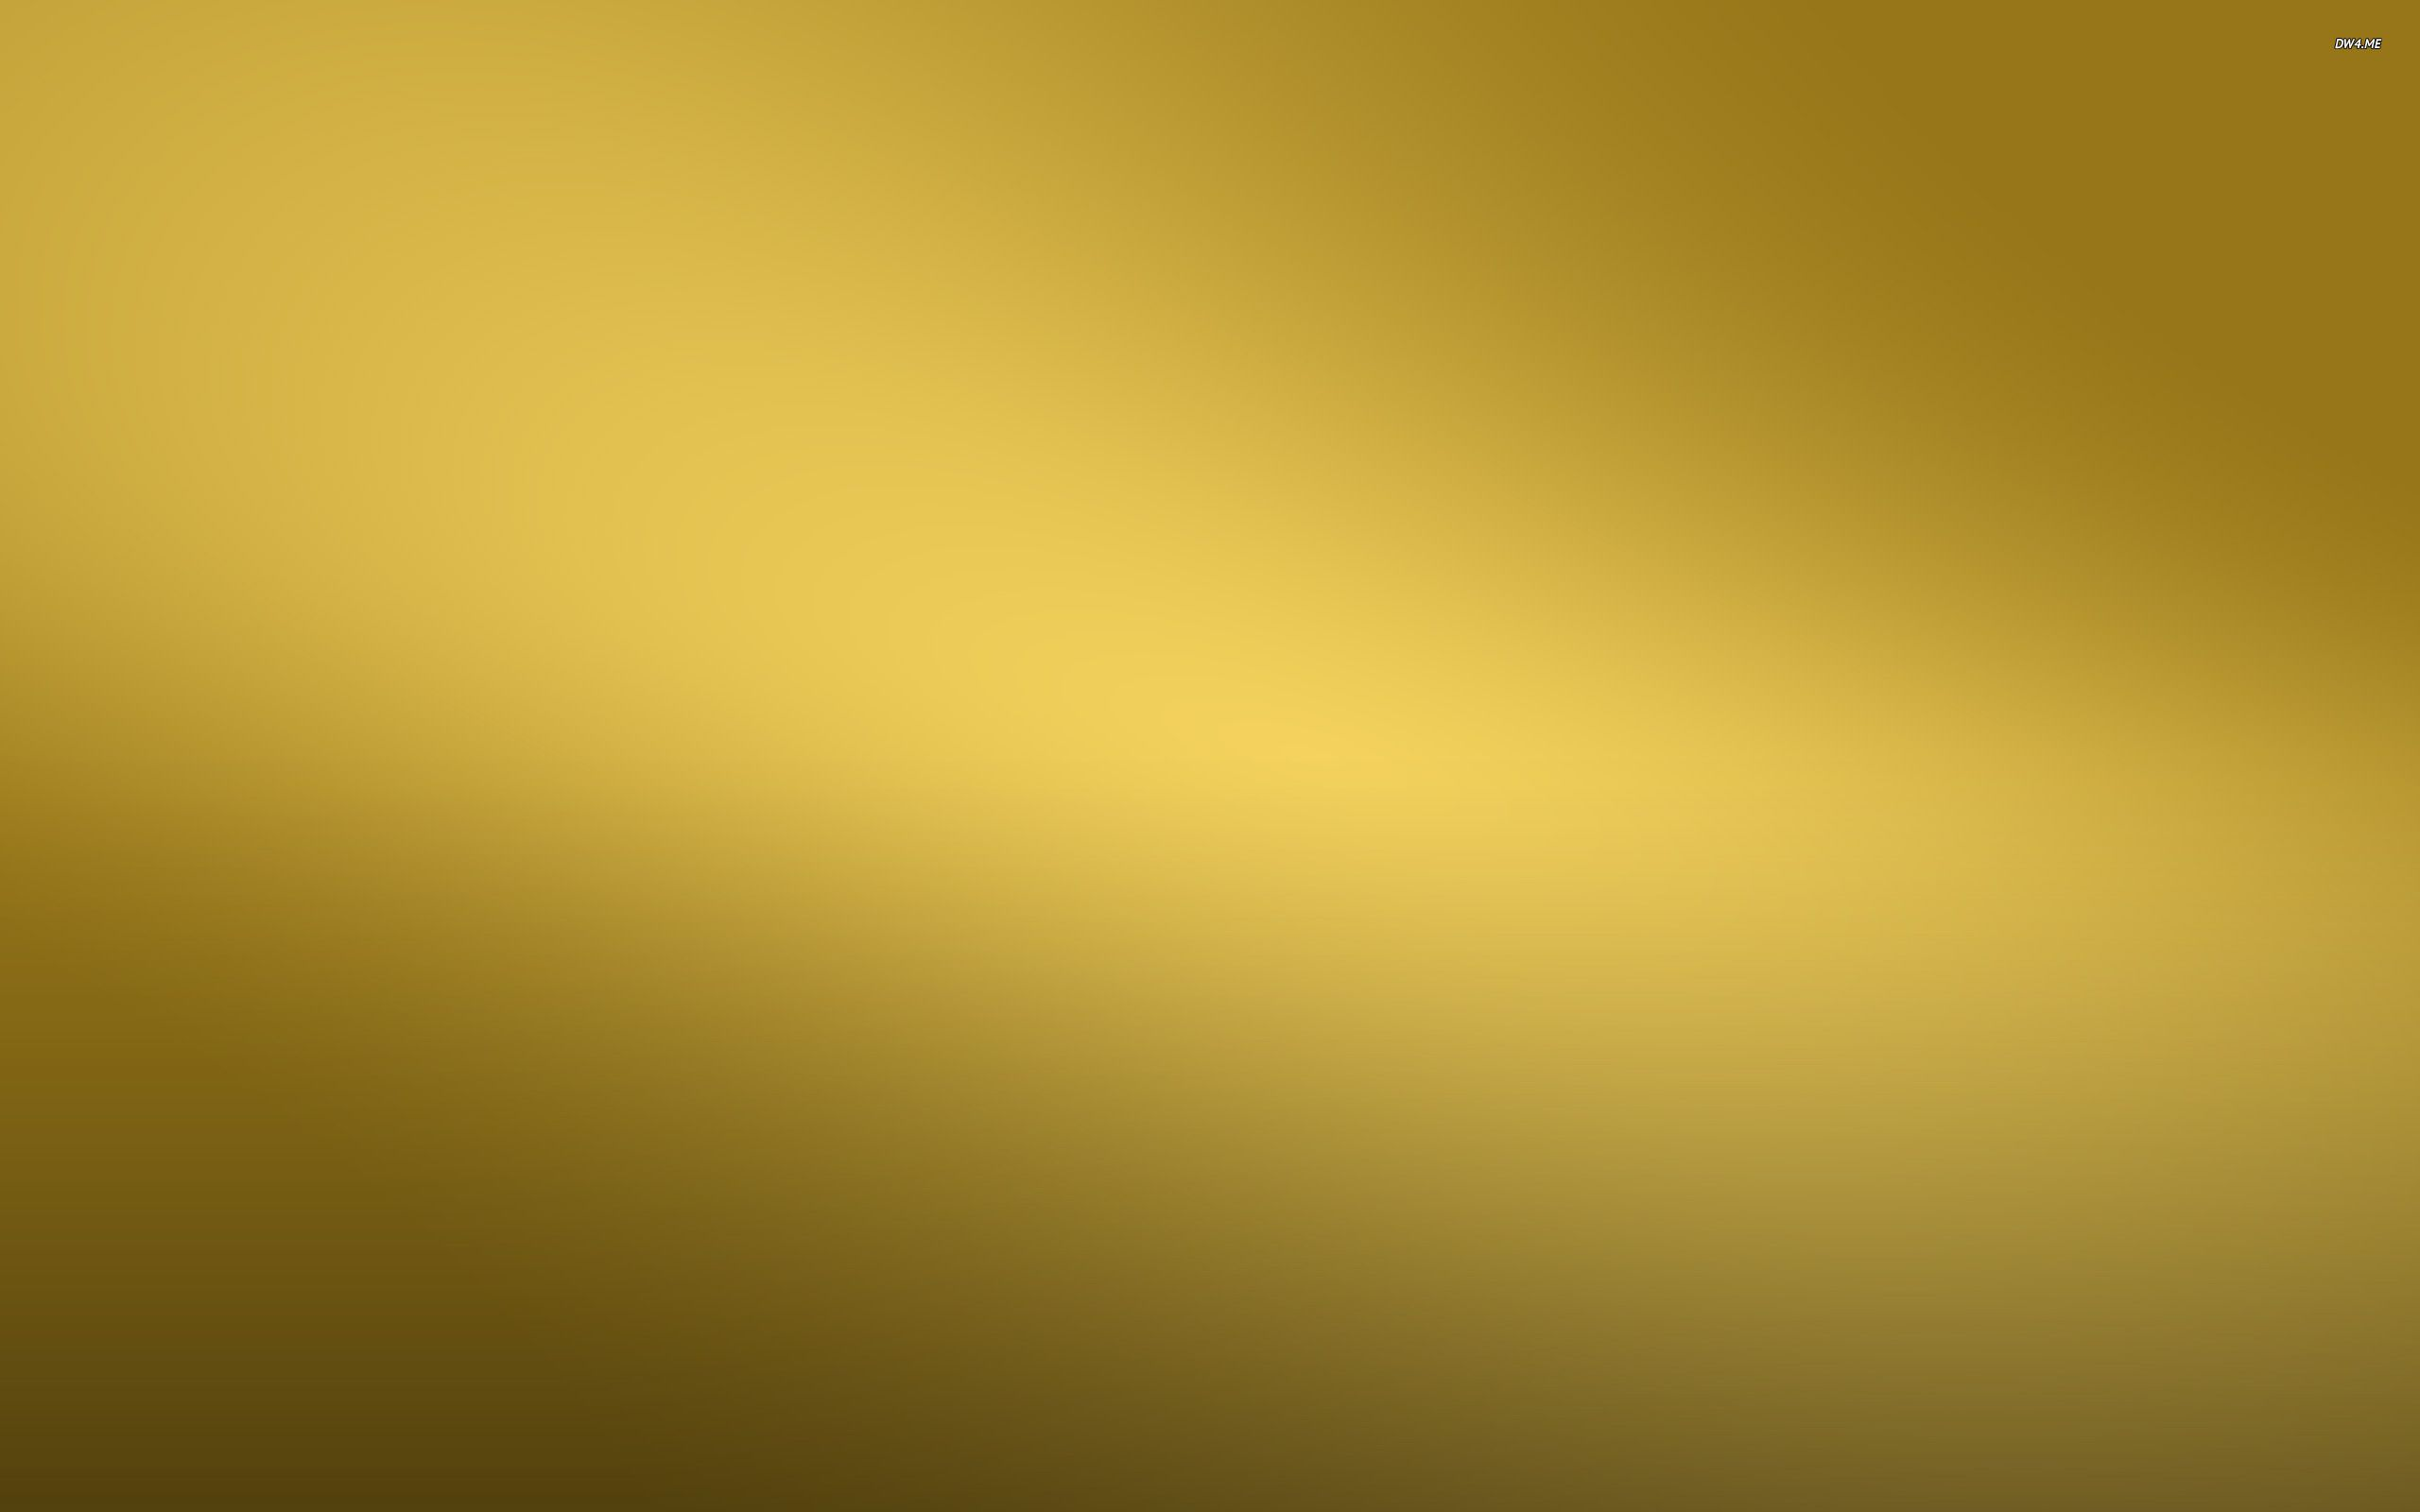 Erin Likes The Gold In The Middle Of This Gradient But Not Edges Solid Color Backgrounds Green Wallpaper Daltile